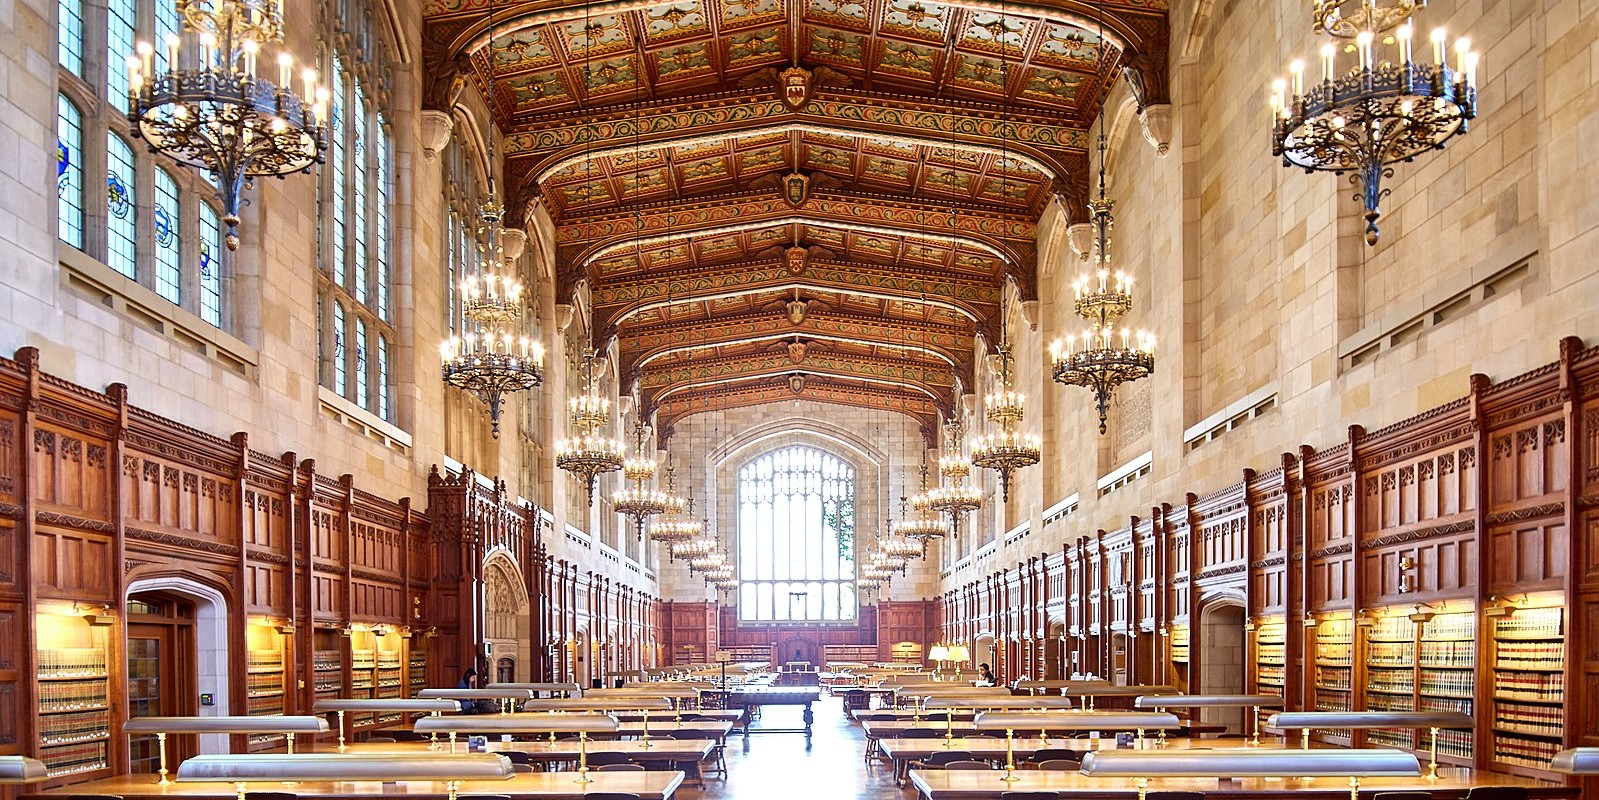 University of Michigan Law Library. Photo: Wikicommons/Cadop